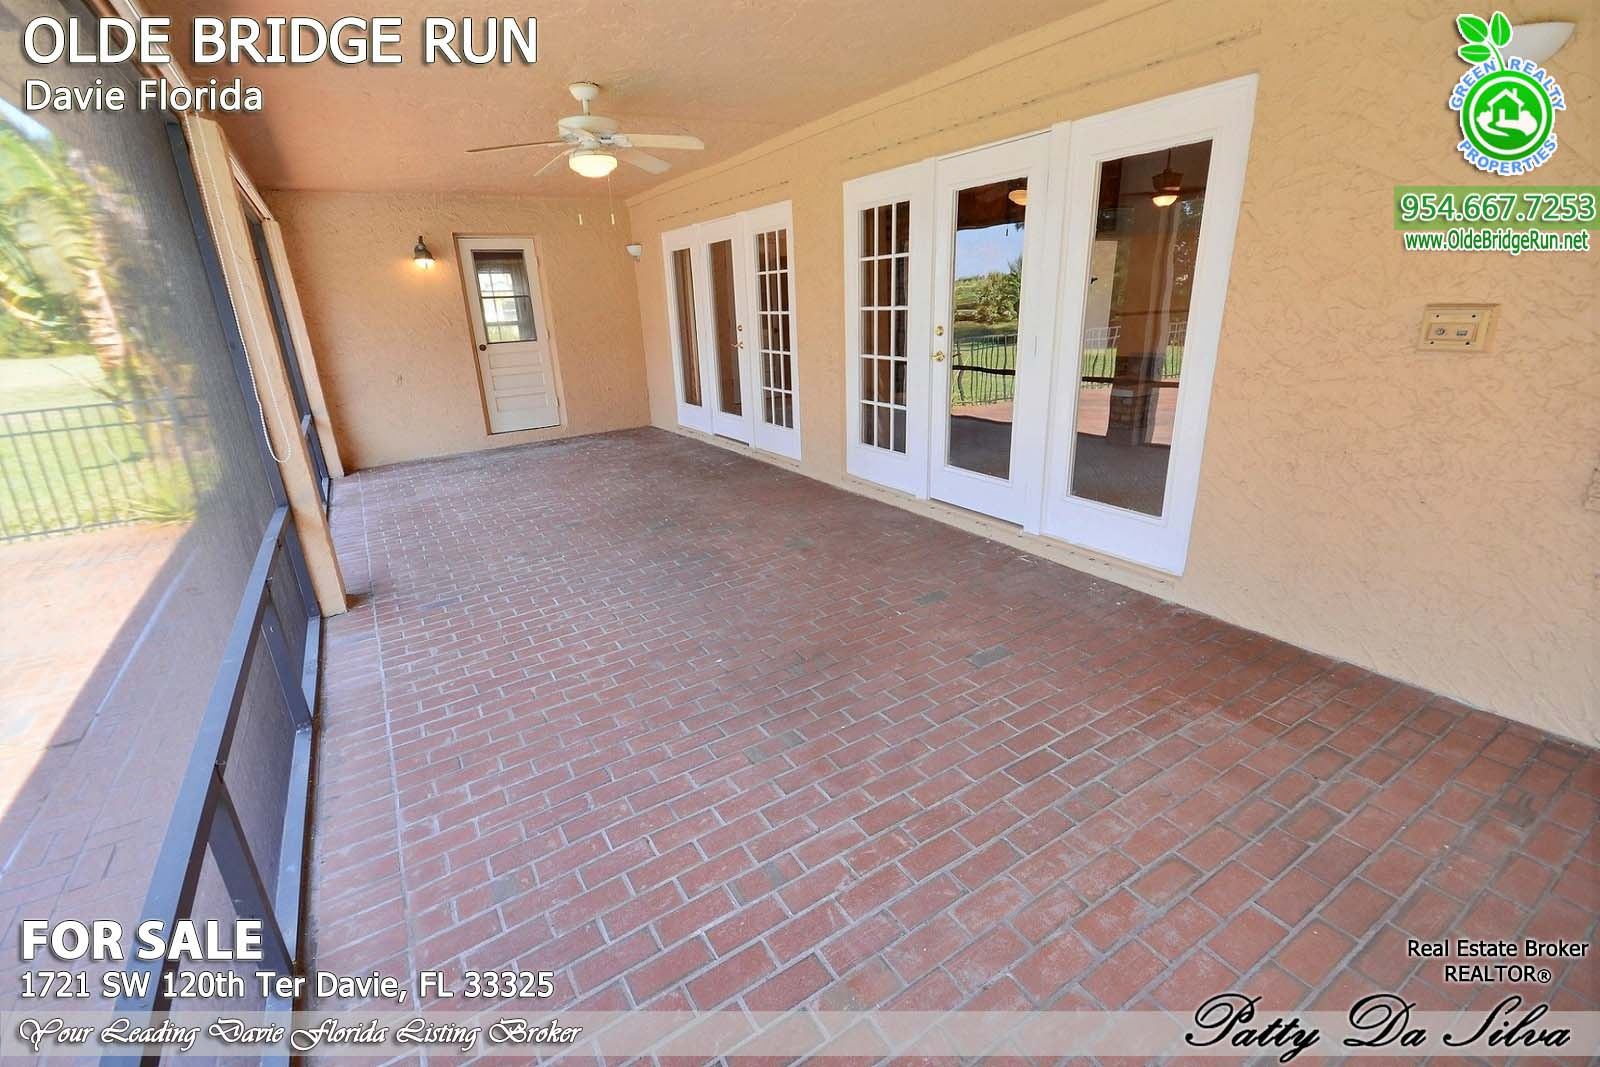 Olde Bridge Run Homes in Davie FL (10)